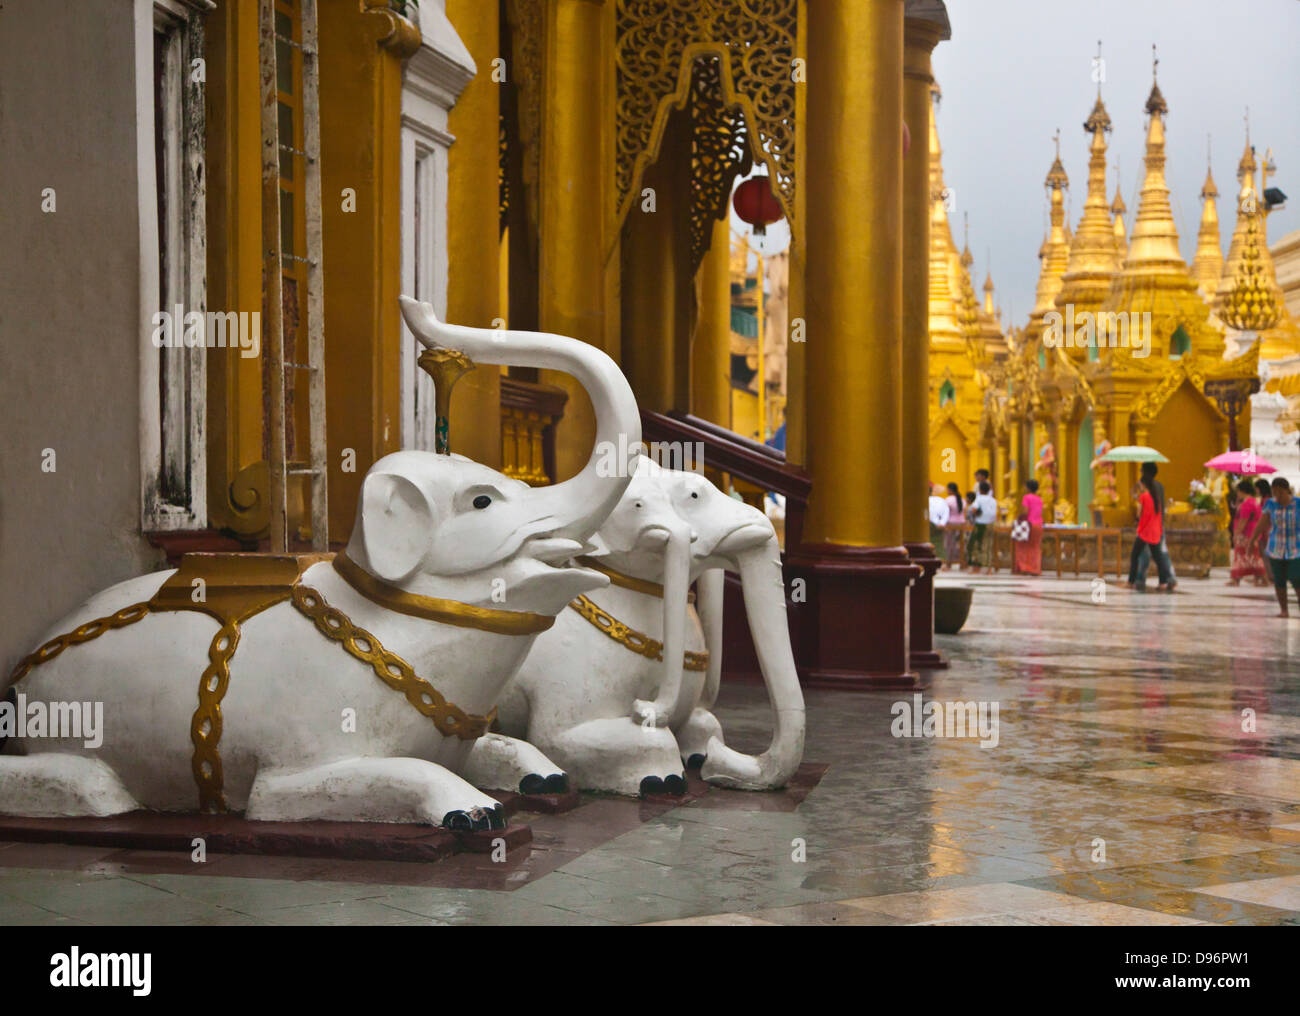 Good luck ELEPHANT STATUES at the SHWEDAGON PAYA or PAGODA which dates from 1485 - YANGON, MYANAMAR Stock Photo